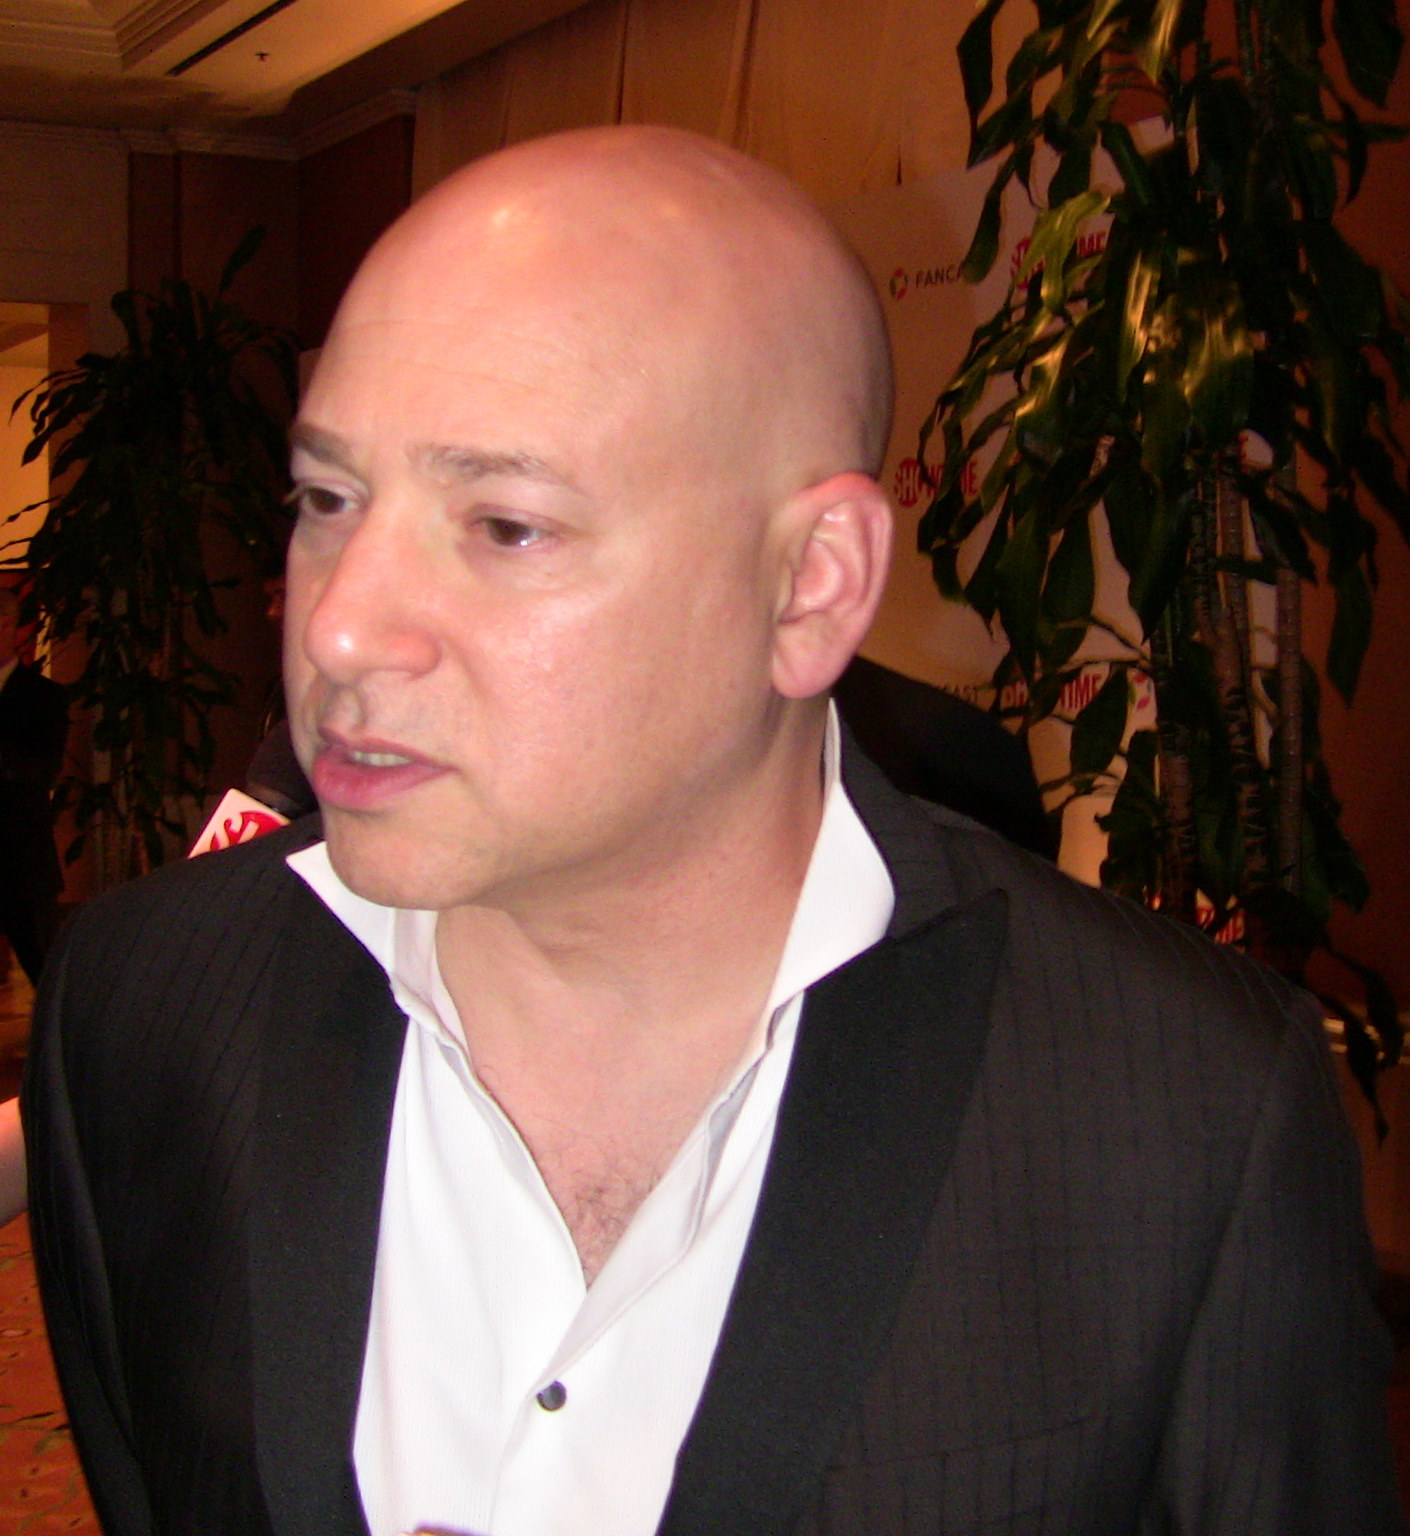 The 57-year old son of father Murry Handler and mother Enid Handler Evan Handler in 2018 photo. Evan Handler earned a  million dollar salary - leaving the net worth at 8 million in 2018